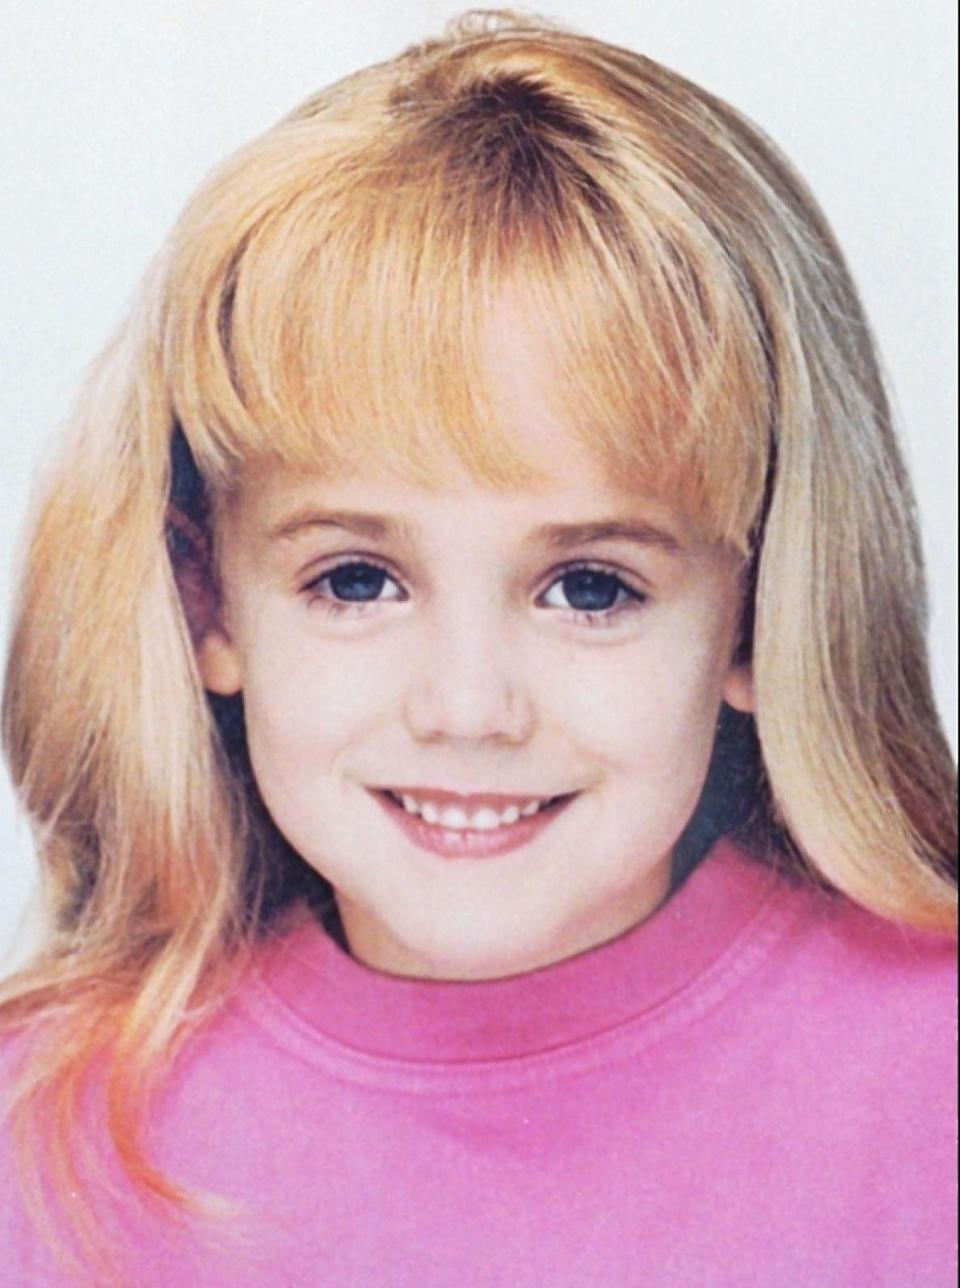 """On Dec. 26, 1996, 6-year-old JonBenet Ramsey was found bludgeoned and strangled to death in the basement of her family's Boulder, Colorado, home. A ransom note from an anonymous group of individuals """"that represent a foreign faction"""" asking for $118,000 in exchange for the safe return of JonBenet was found just hours before, but no call ever came from a kidnapper and it was never linked to a murderer. The entire Ramsey family was cleared of any involvement in the murder of JonBenet back in 2008, thanks to then newly discovered DNA evidence, according to 9News. <br /><br />Beginning in 2010, investigators reopened the case and launched a fresh round of interviews with witnesses that could provide more insight into the murder, according to ABC News, but nothing fruitful came of those interviews. The DNA evidence still points to an """"unexplained third party"""" that serves as a vague lead for authorities still pursuing the case, Time magazine reported. Boulder police have tested more than 150 DNA samples and investigated nearly the same amount of potential suspects in their ongoing investigation, but none have ever been linked to the crime. <br /><br /><strong>Read More:</strong> <a href=""""http://www.huffingtonpost.com/2013/10/28/jonbenet-ramsey-killer-_n_4170502.html?utm_hp_ref=cold-case"""" target=""""_blank"""">JonBenet Ramsey's Killer 'May Be Lost Forever'</a>"""